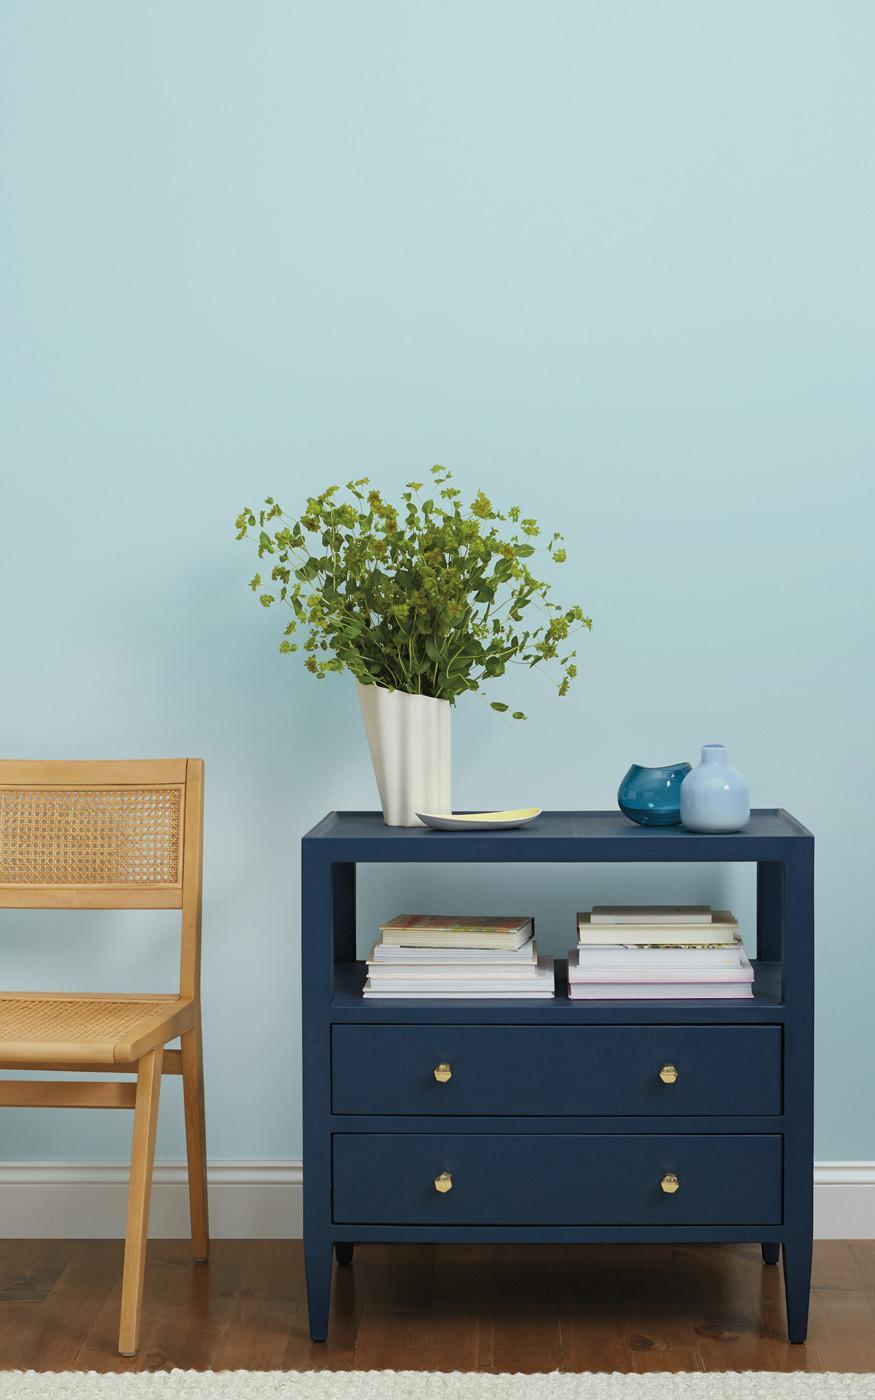 """<p>If you're looking for an eye-catching wall color that will also help you stay cool and calm throughout the day, look no further than a fresh shade of blue. """"If your job requires long stretches of focused time, choose a clean, fresh blue hue, like <a href=""""https://www.clare.com/paint/wall/nairobi-blue"""" rel=""""nofollow noopener"""" target=""""_blank"""" data-ylk=""""slk:Nairobi Blue"""" class=""""link rapid-noclick-resp"""">Nairobi Blue</a>,"""" Gibbons says. """"Blue is universally known as a productive color that can help you stay calm, thus helping you to remain focused on the task at hand.""""</p>"""